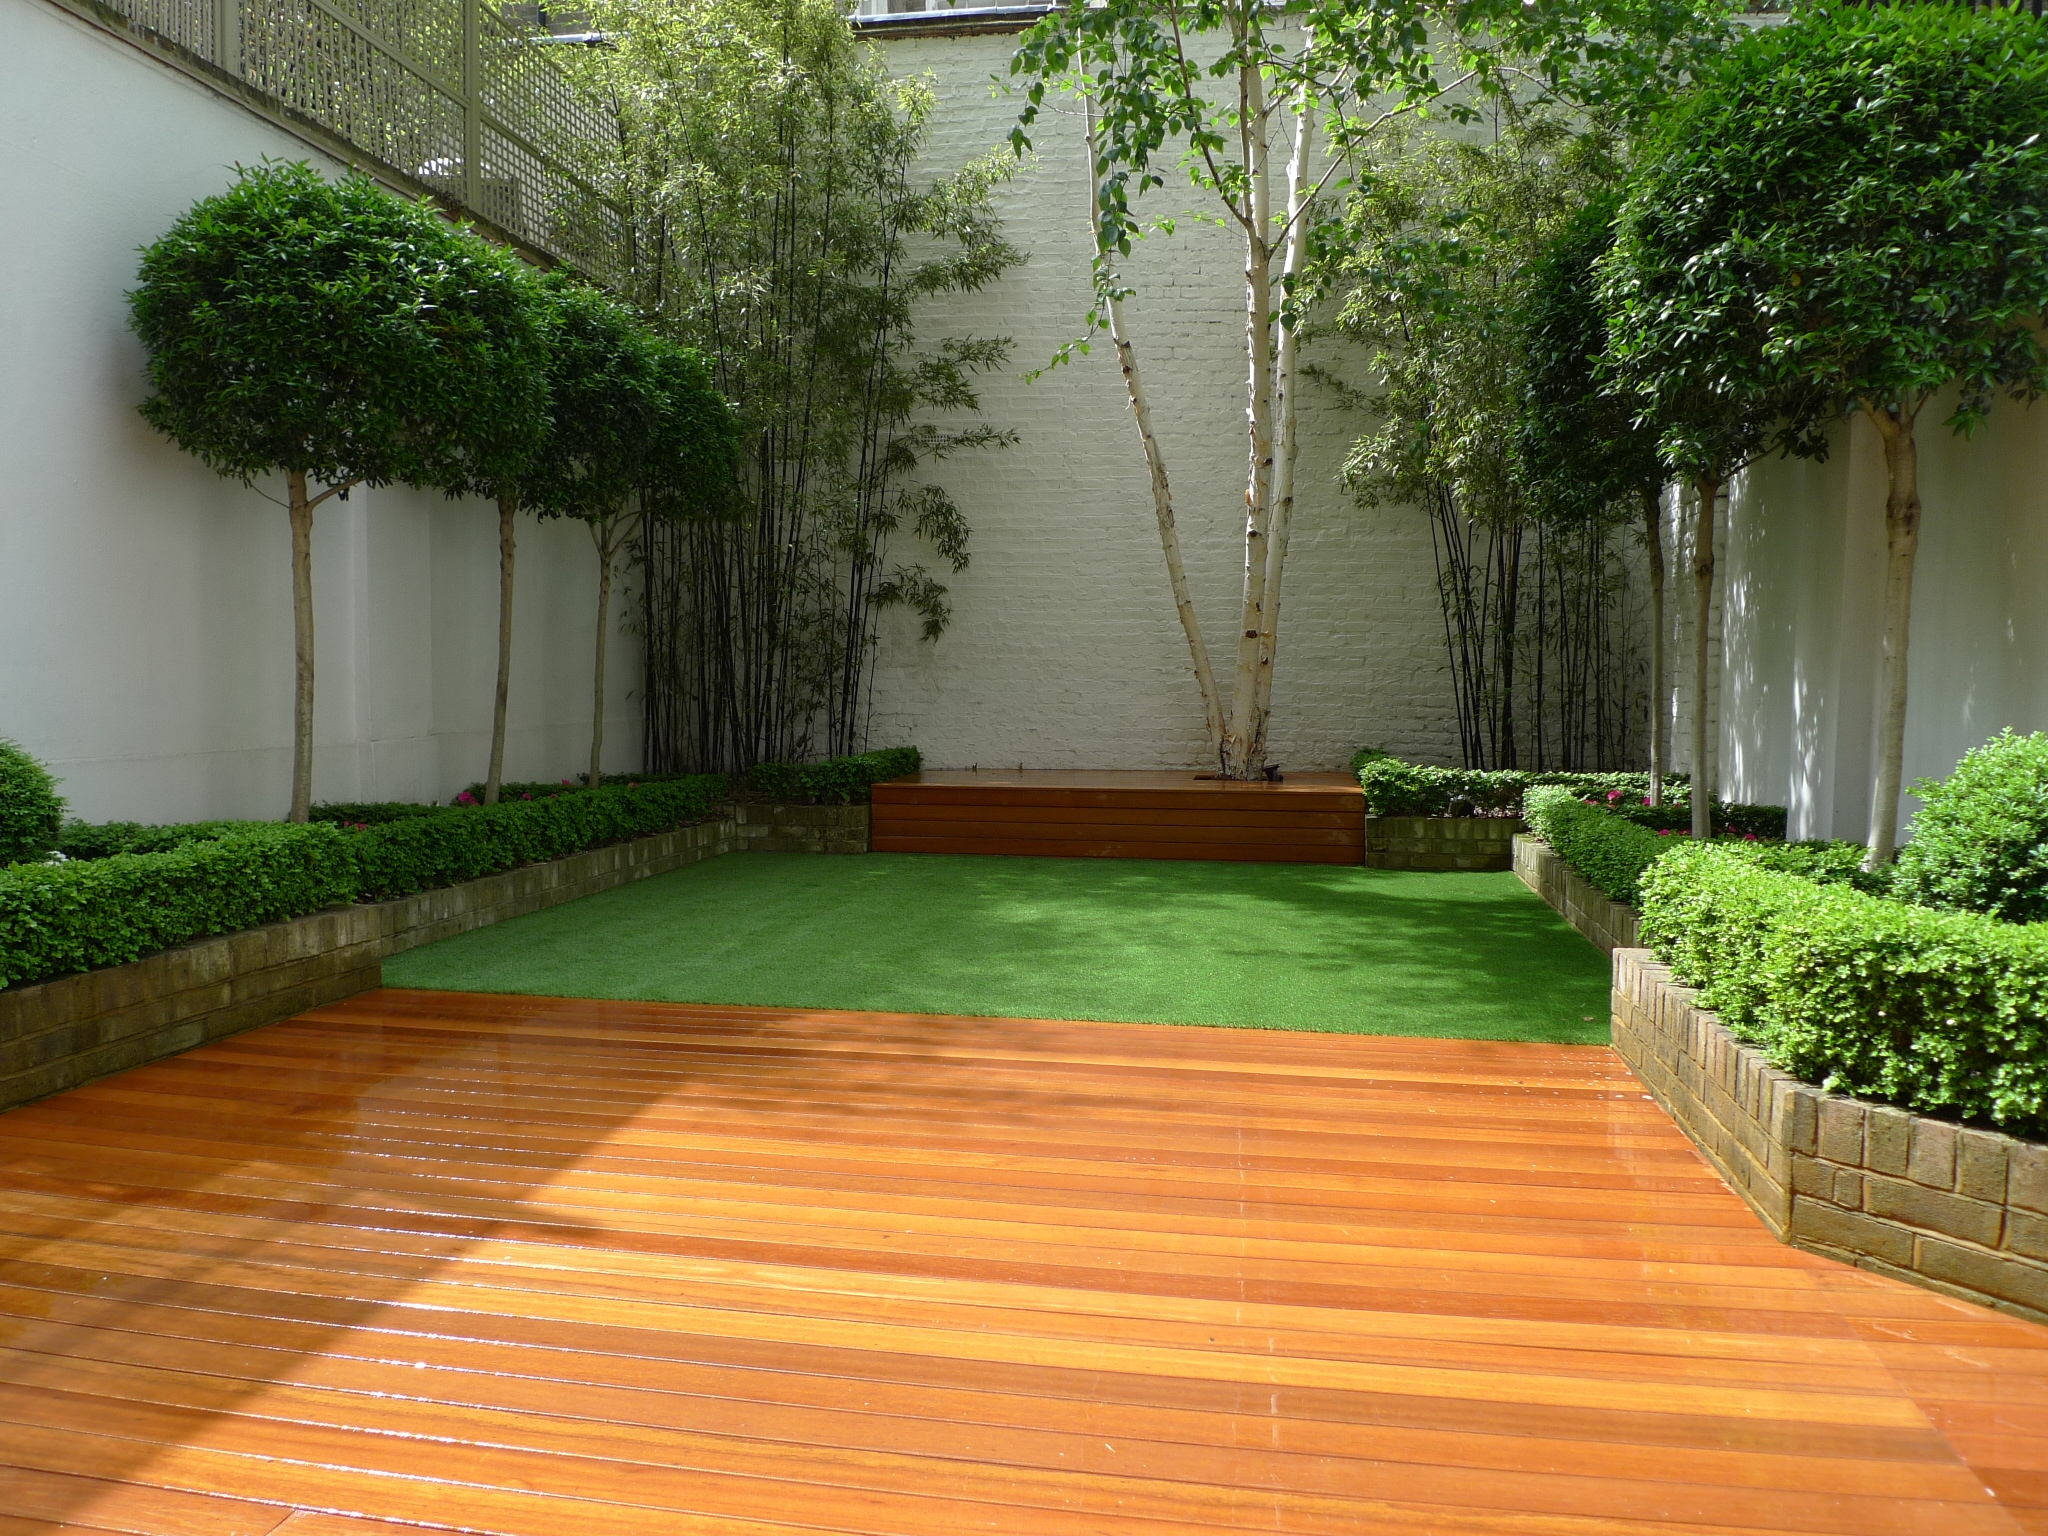 Chelsea garden design hardwood decking artificial grass for Landscape design